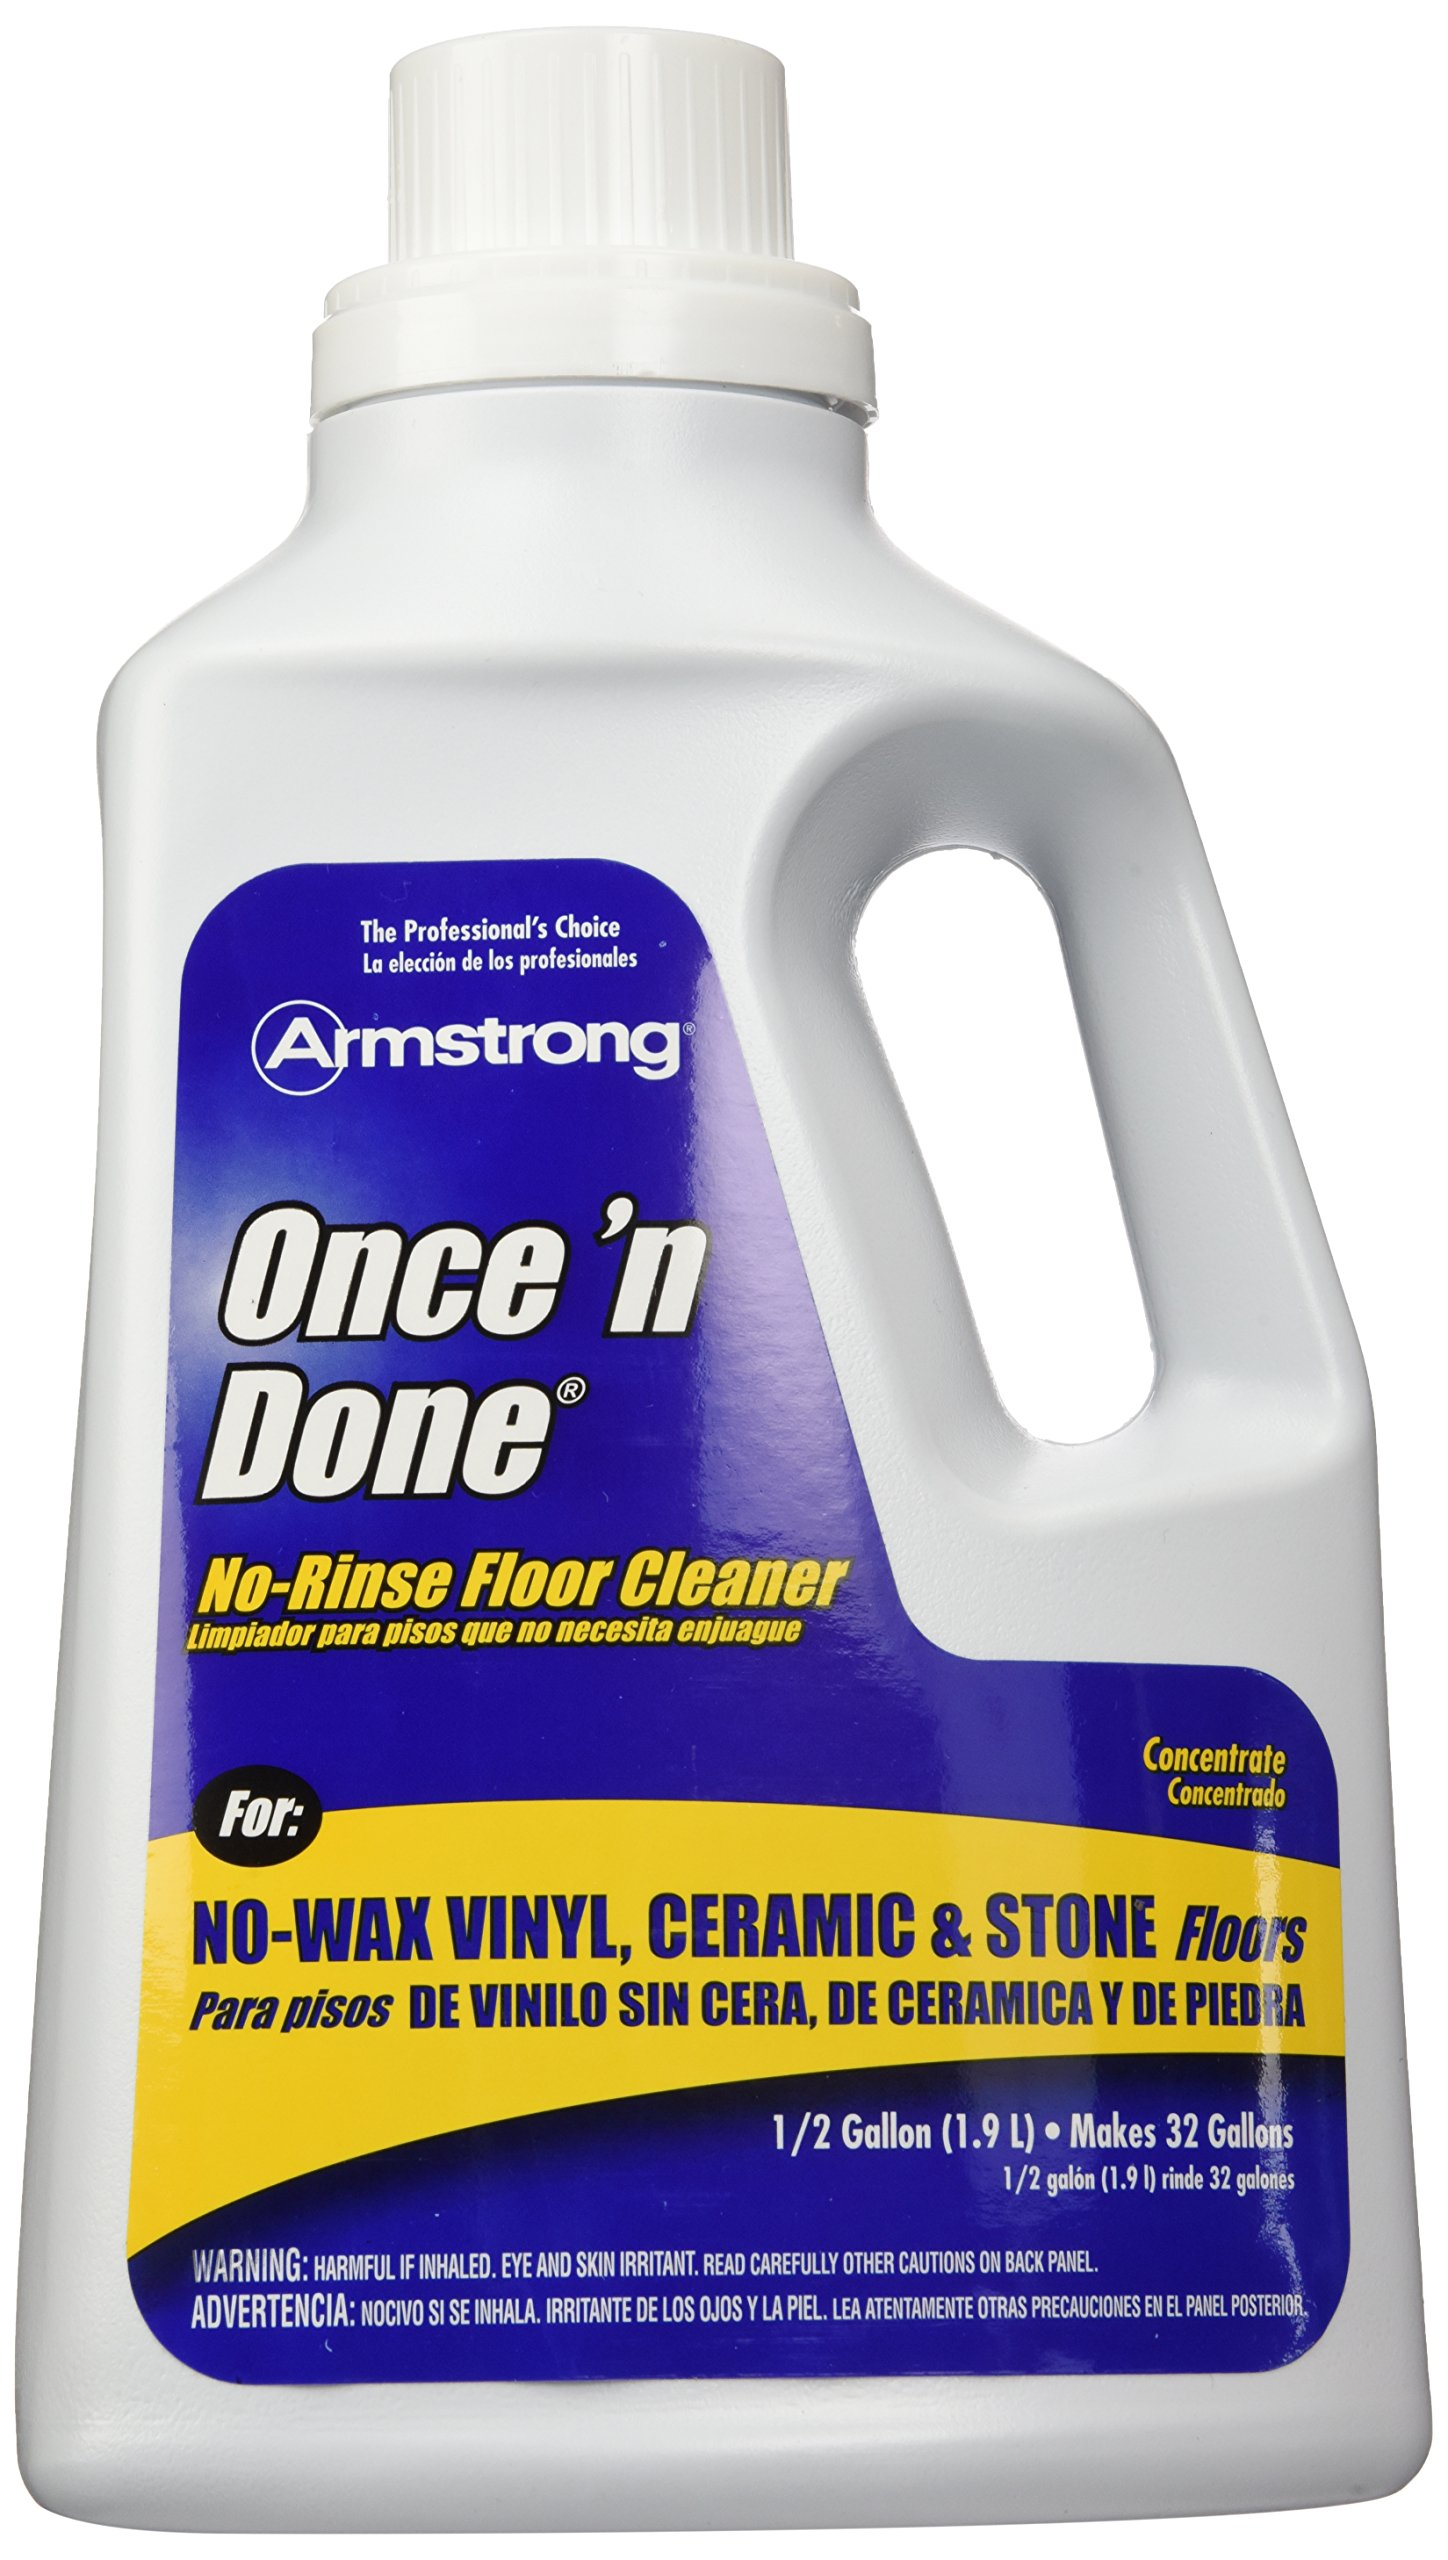 Armstrong 330806 Armstrong Once 'N Done Cleaner Concentrate, 1/2 Gallon(64OZ)